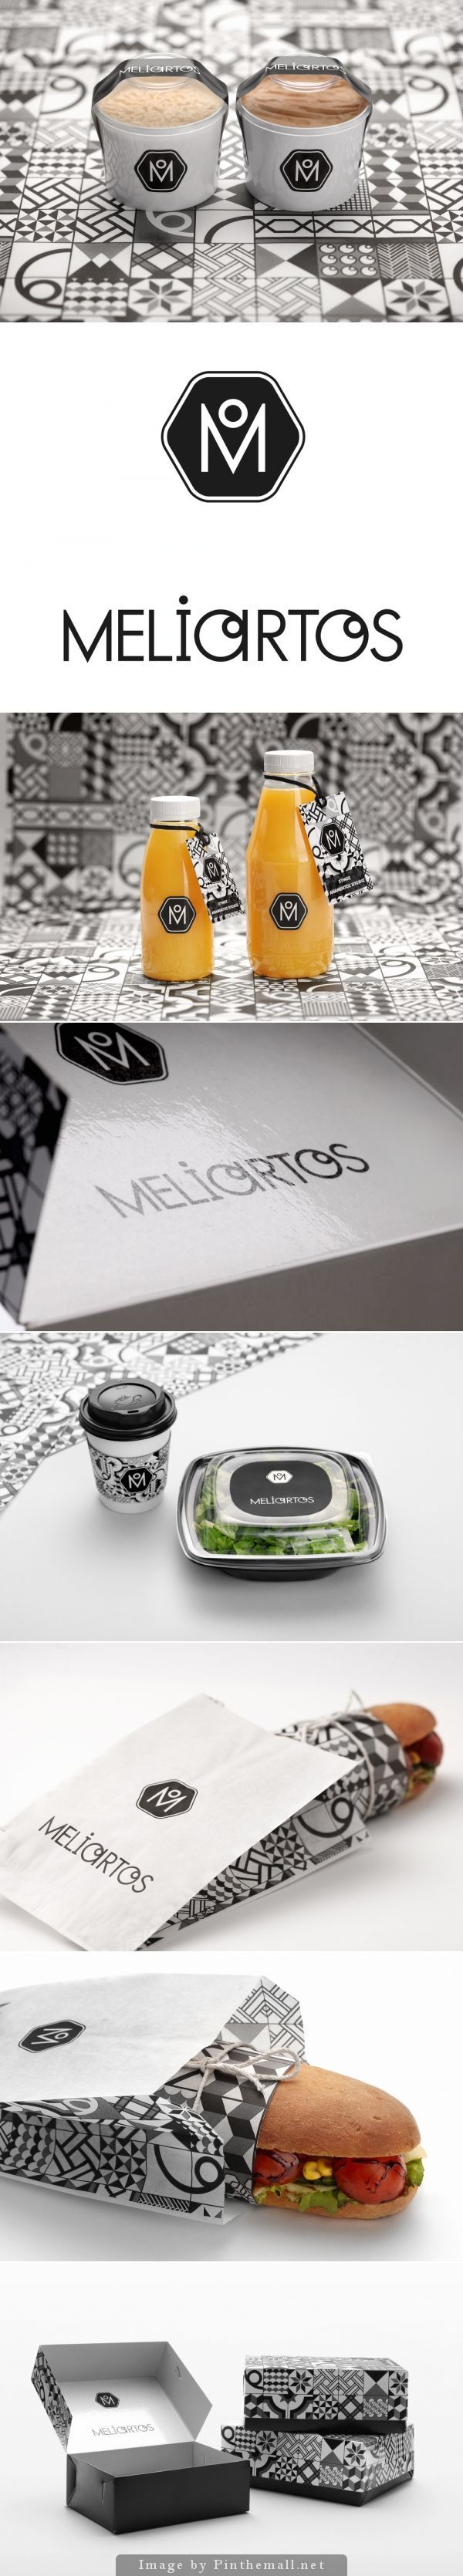 Meliartos By Kanella Via The Dieline, Are You Hungry Yet